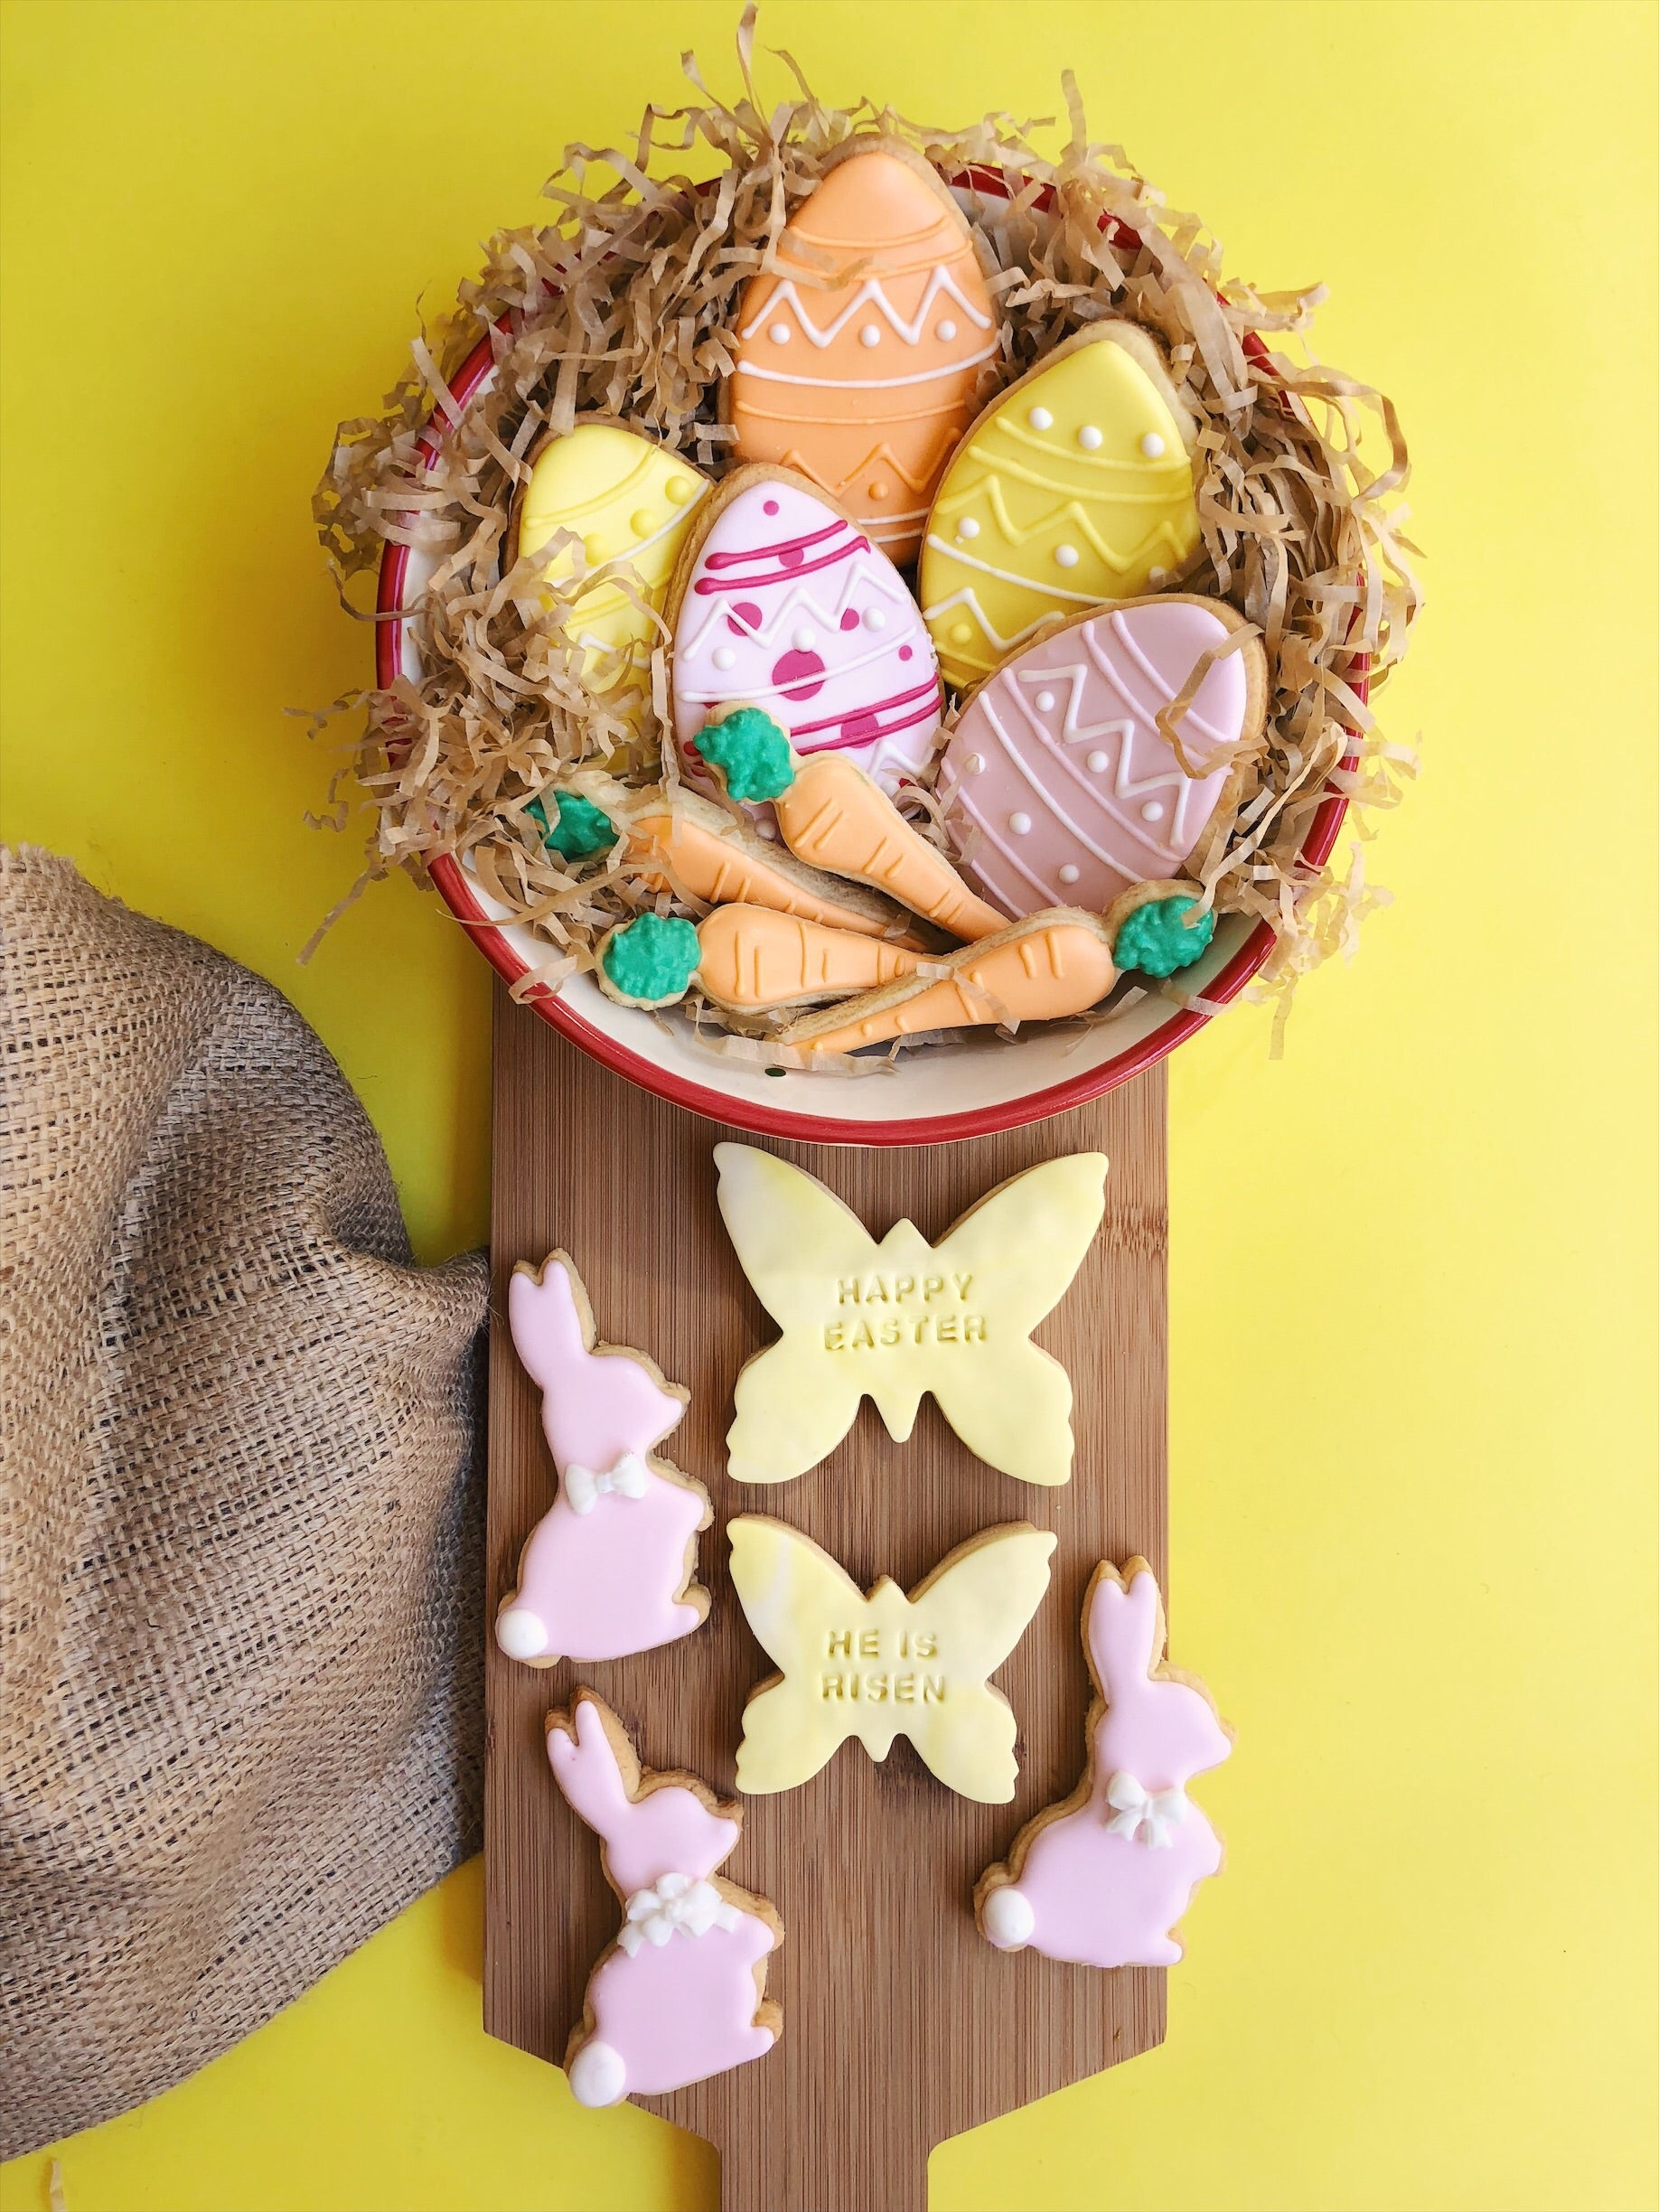 Happy Easter! - Sugar Rush by Steph